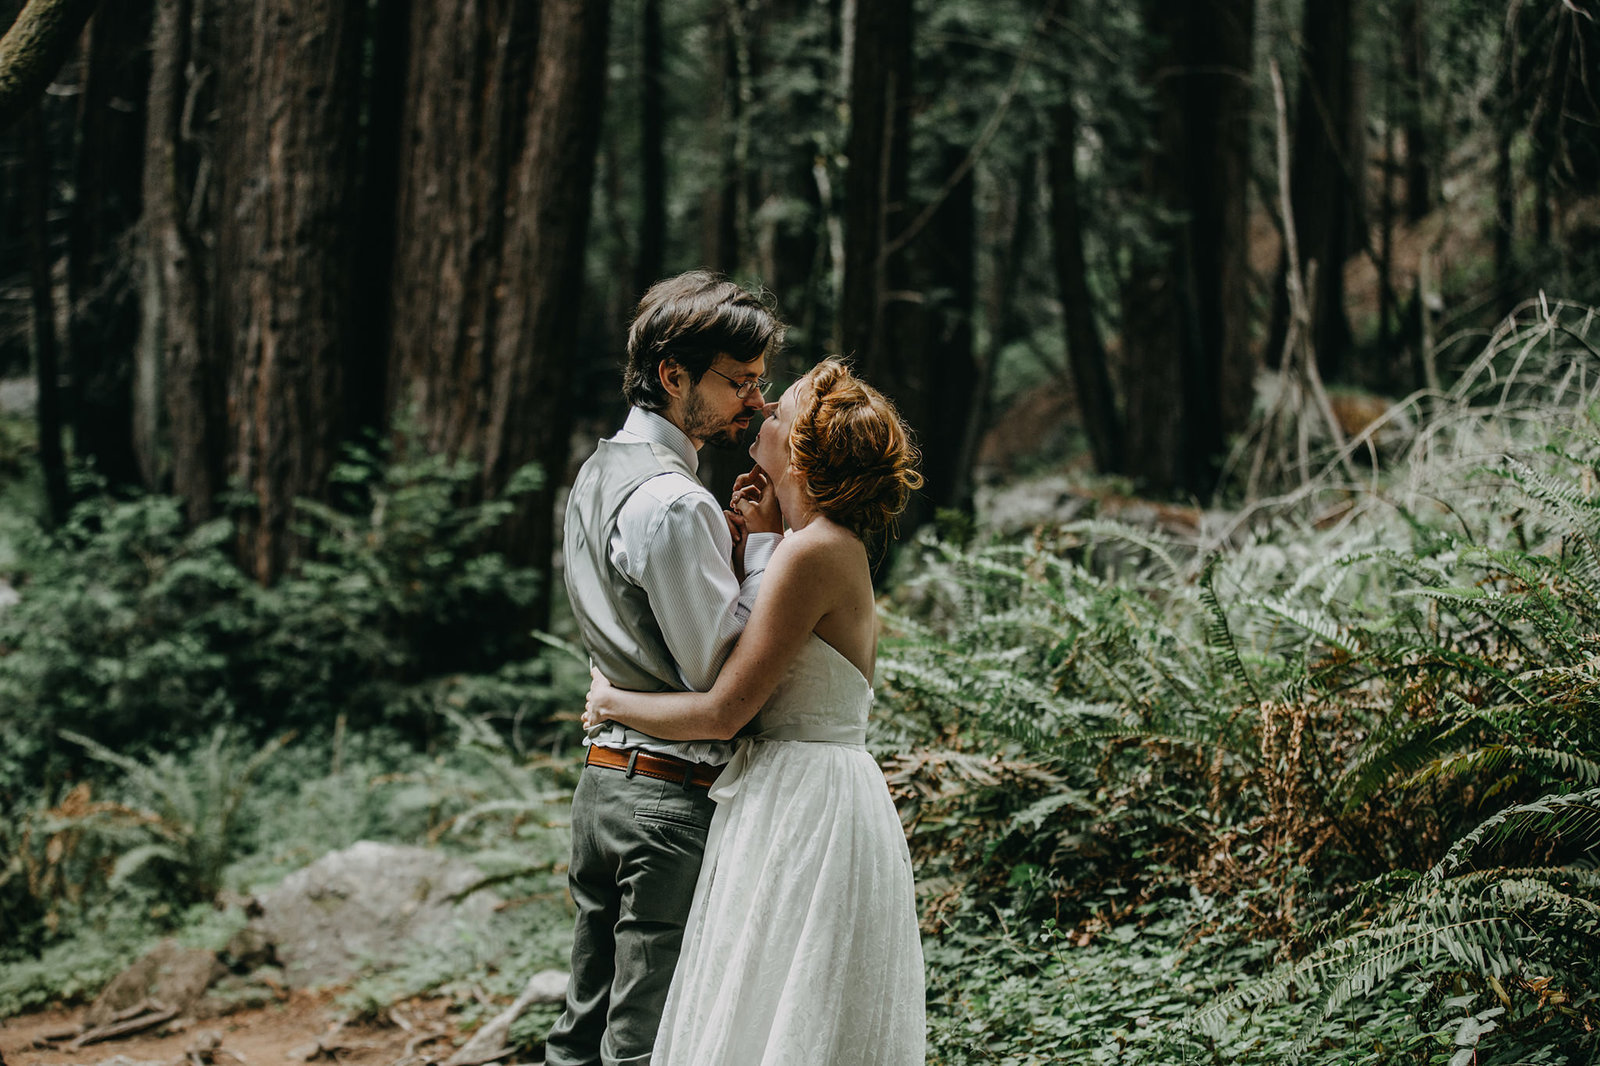 Hoh Rainforest Elopement Photographer